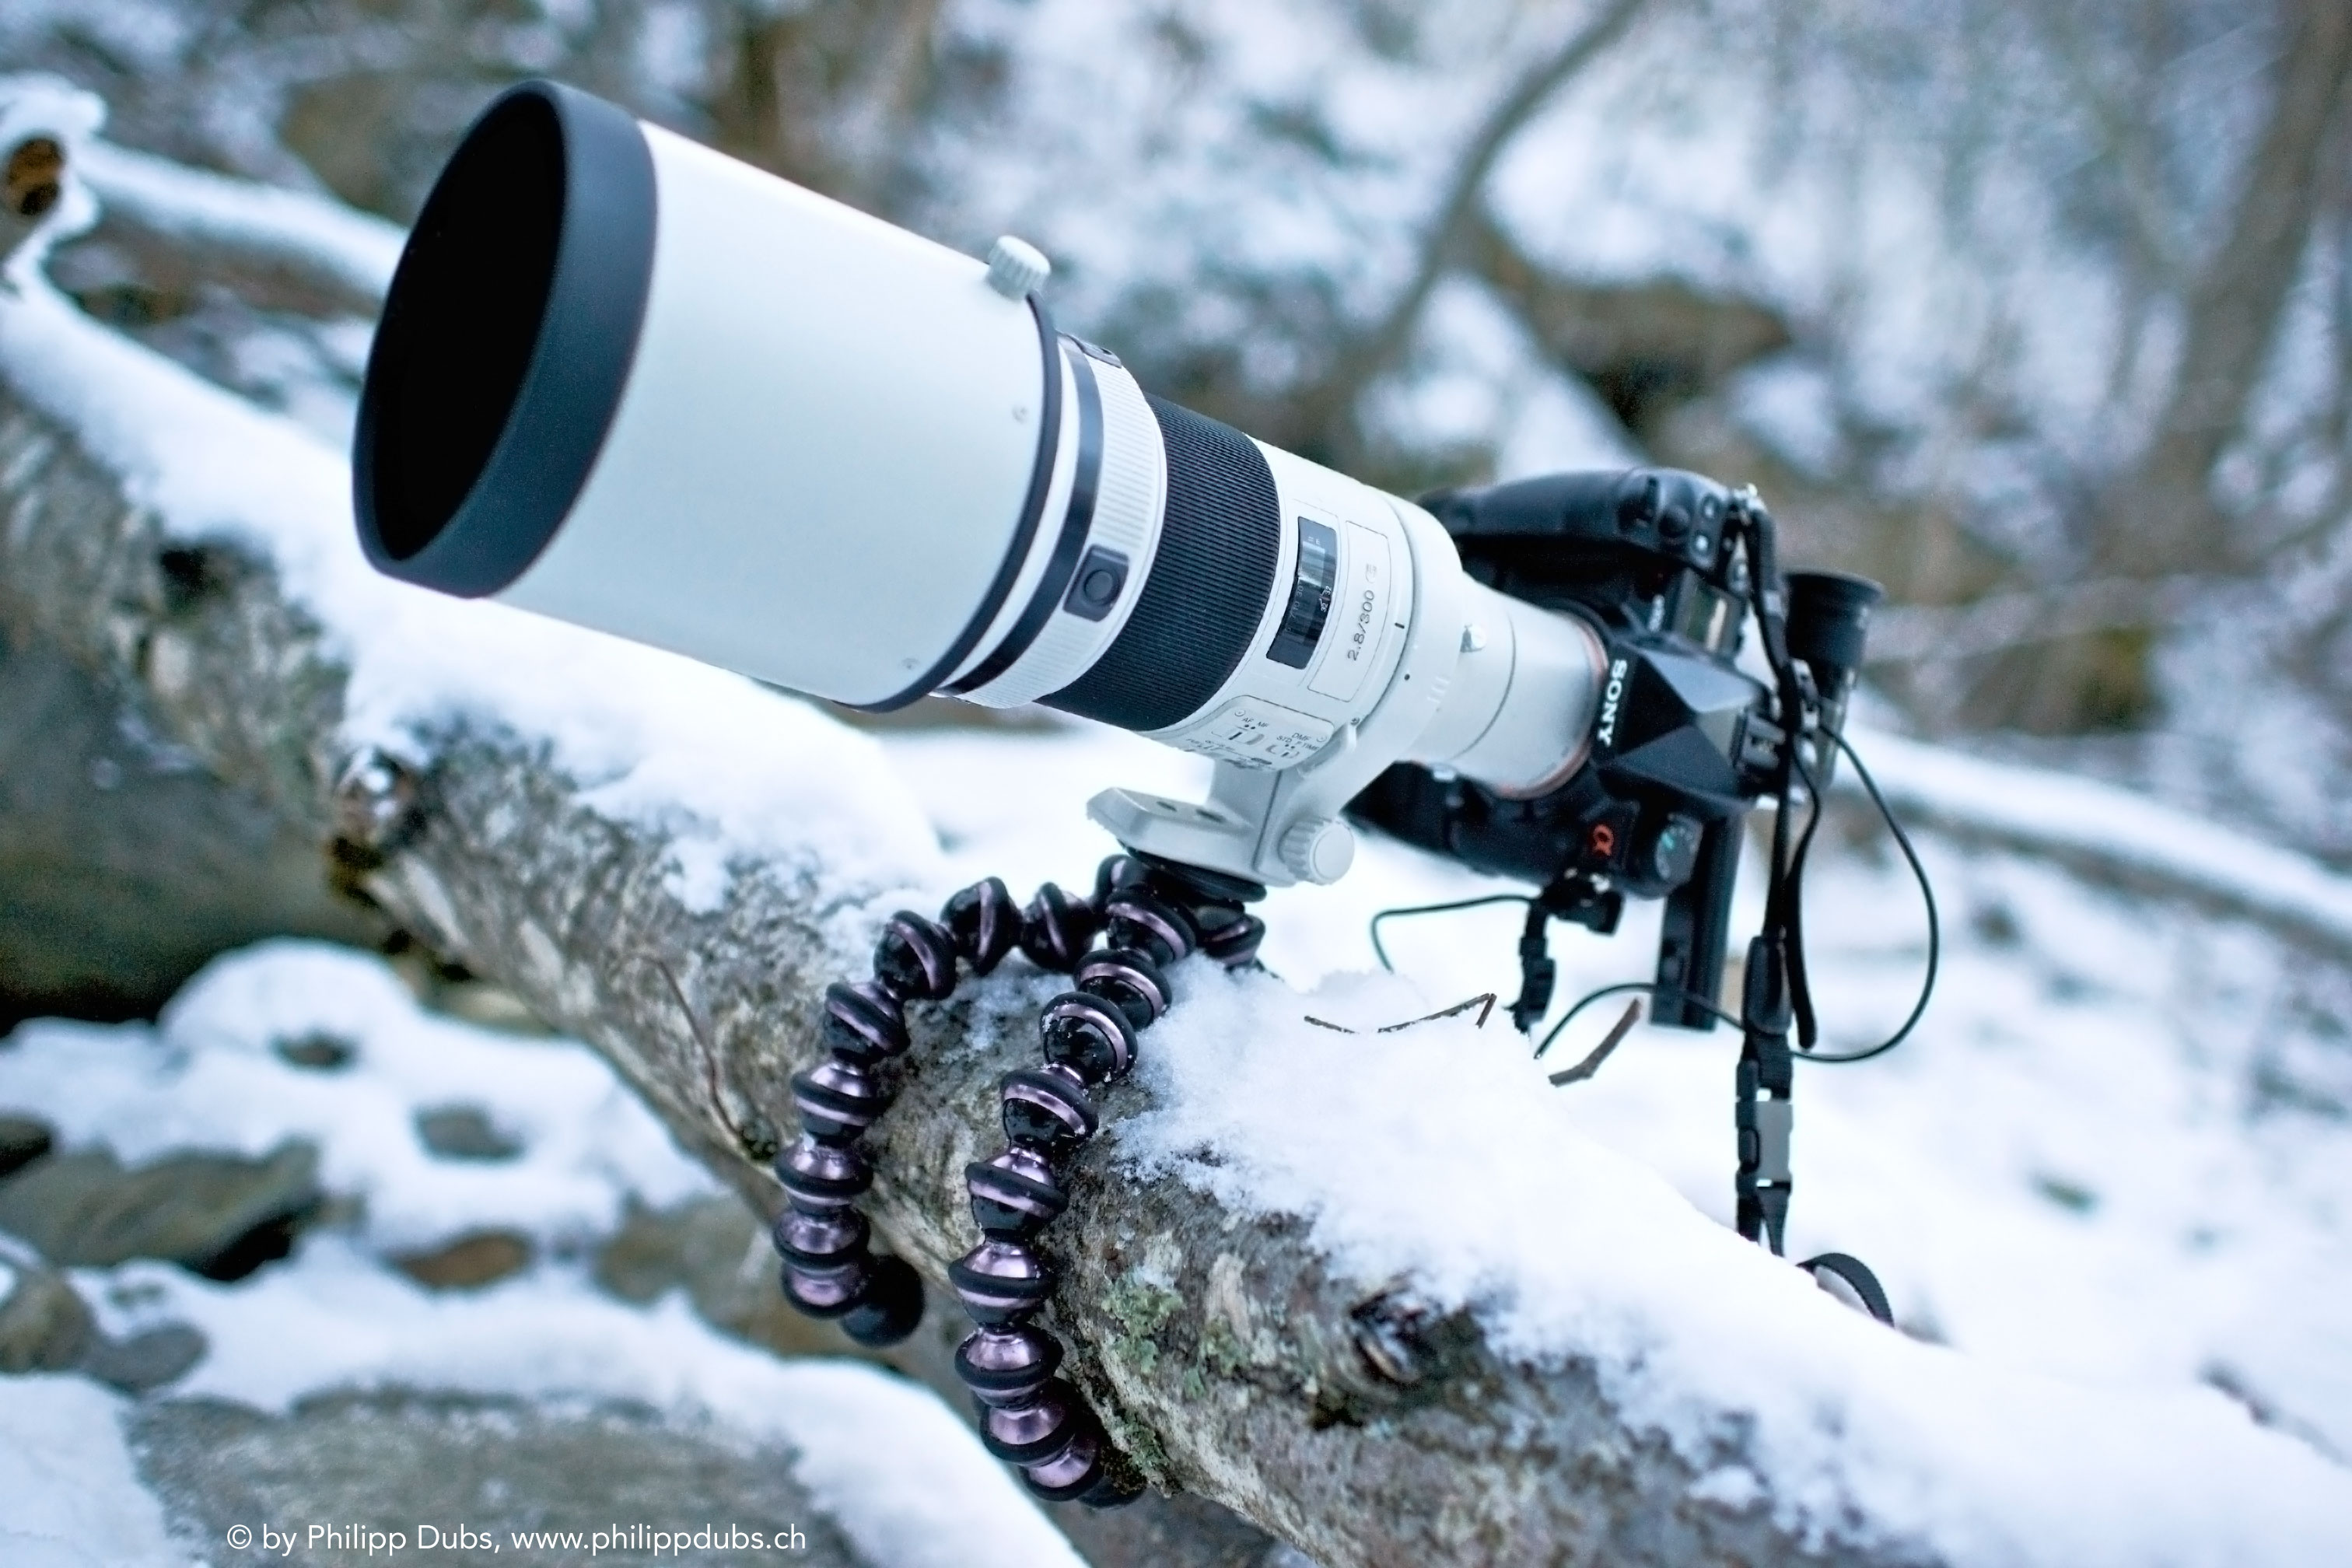 http://www.cyberstyle.ru/uploaded-dl/fotos/1043/gorillapodfocus-02-snow.jpg